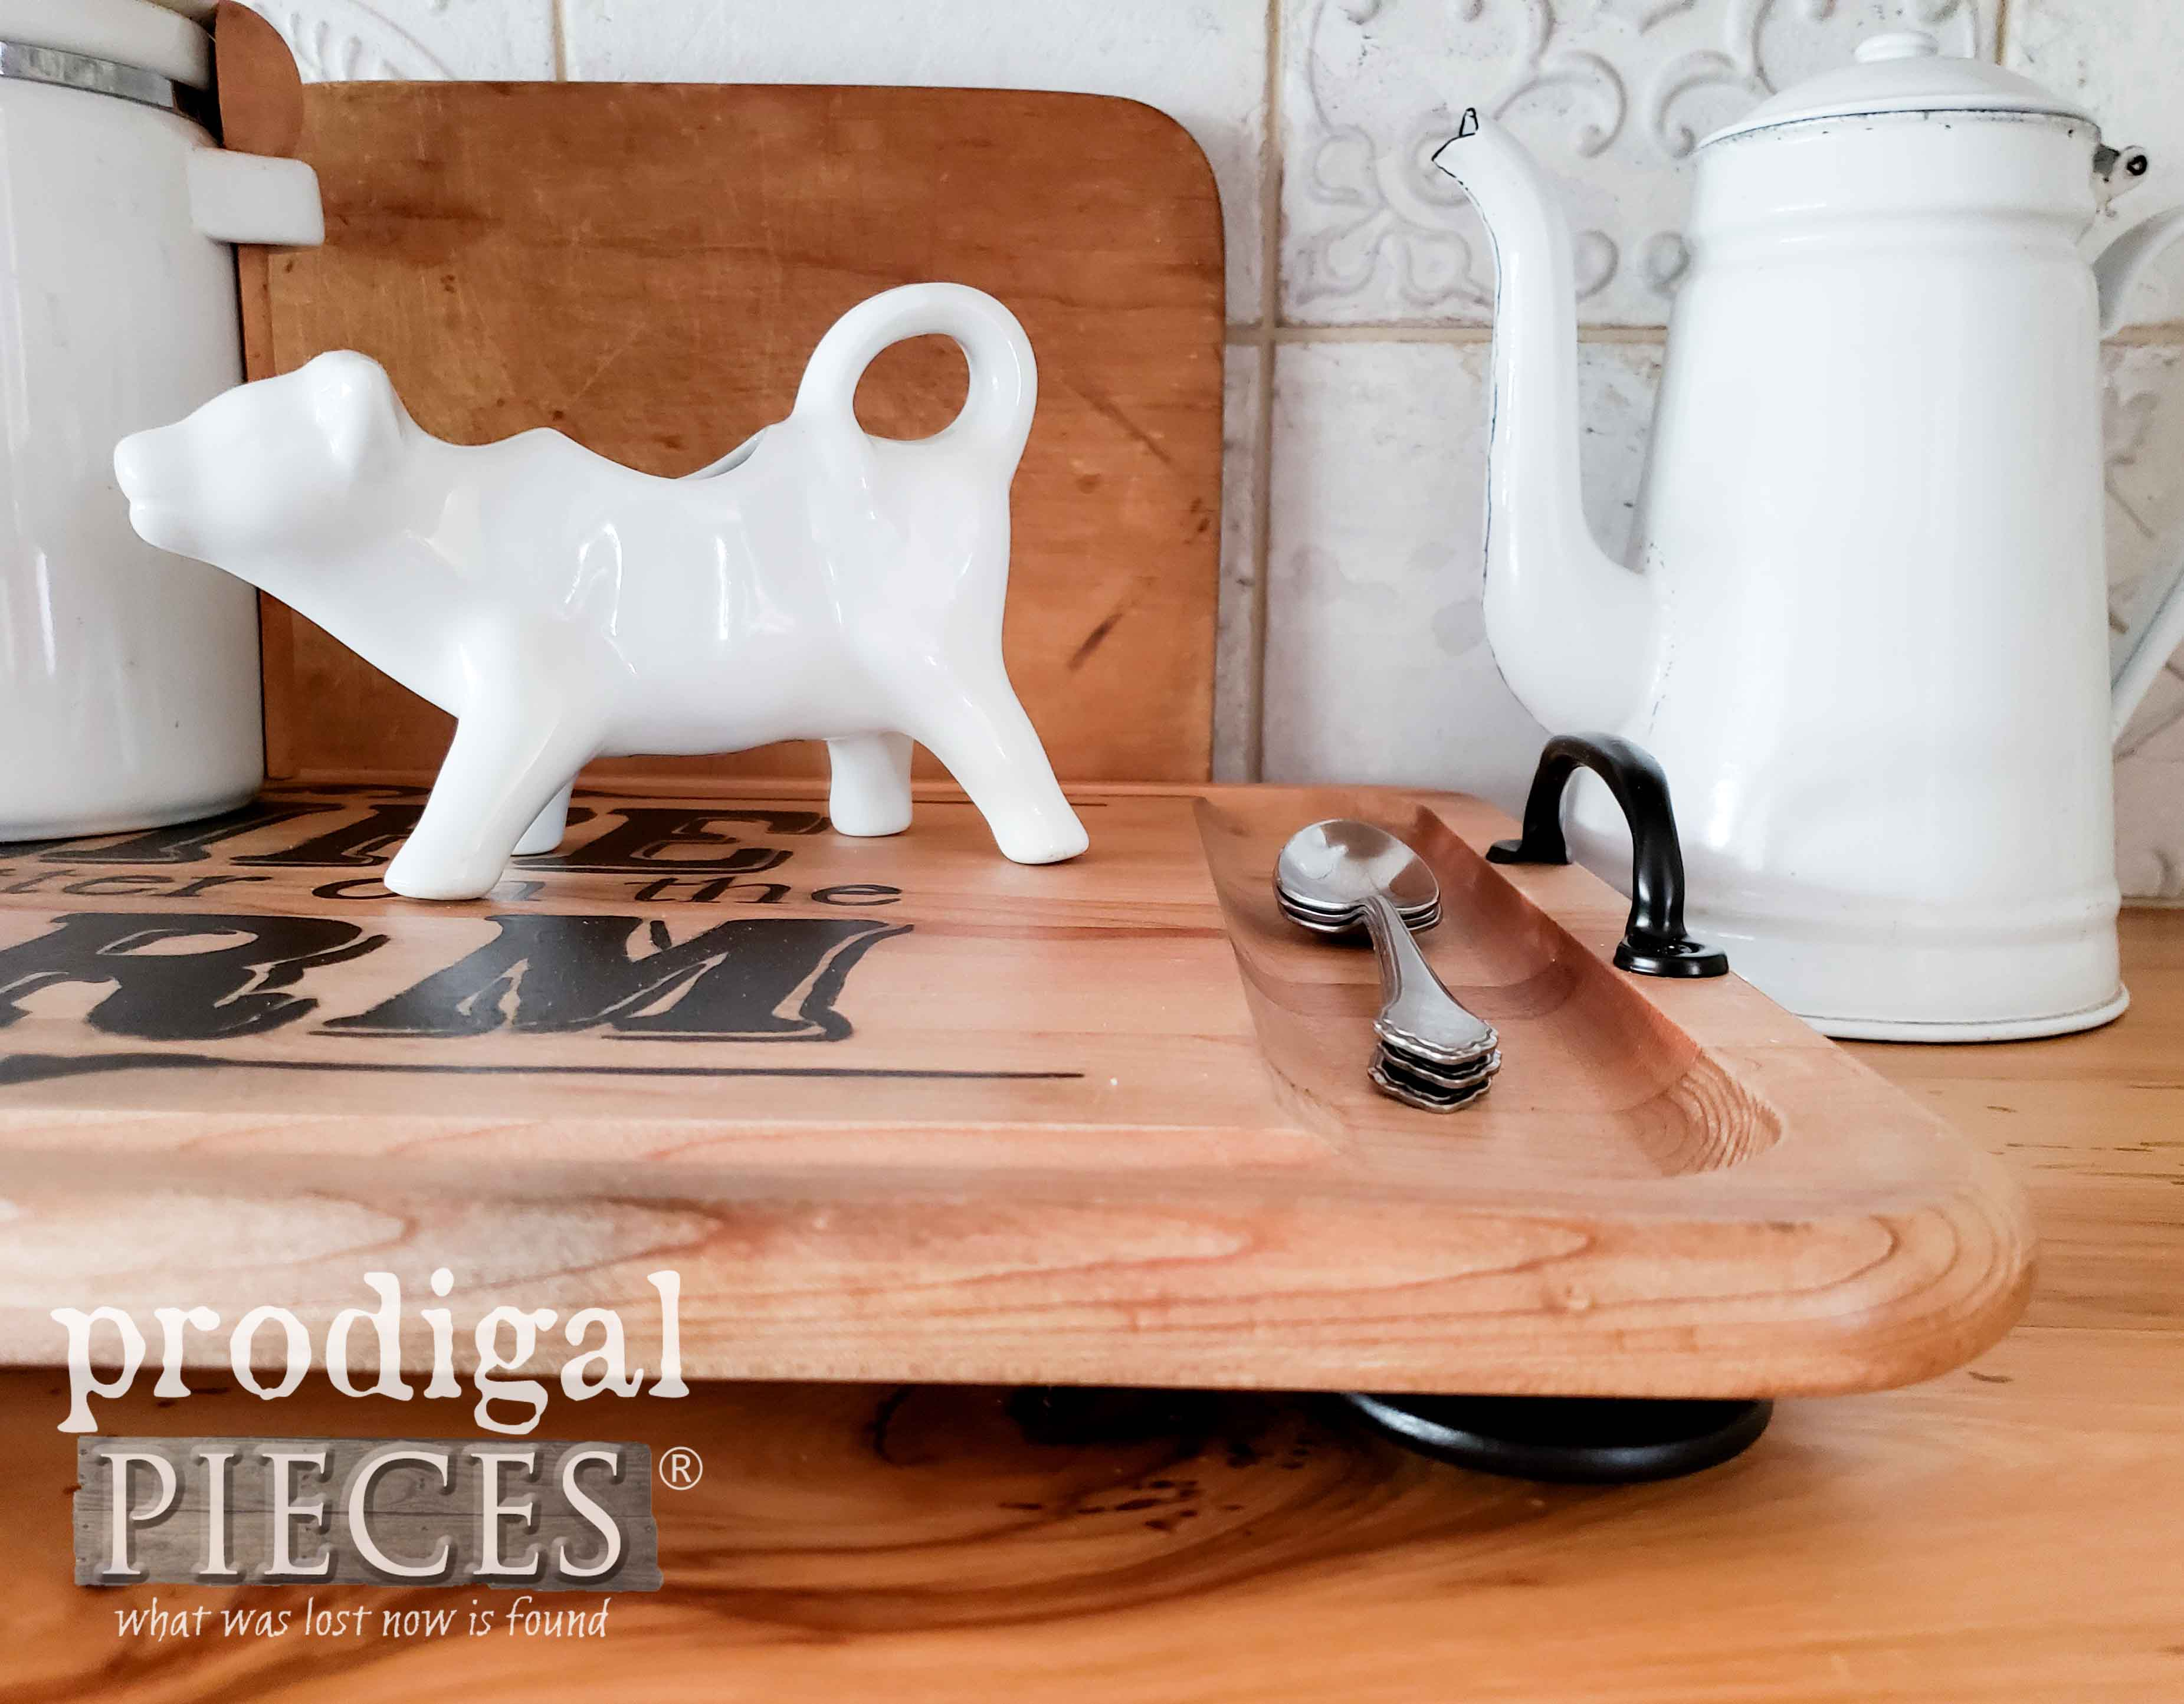 Footed Wooden Serving Tray made from Repurposed Cutting Boards | Farmhouse Style Decor by Larissa of Prodigal Pieces | prodigalpieces.com